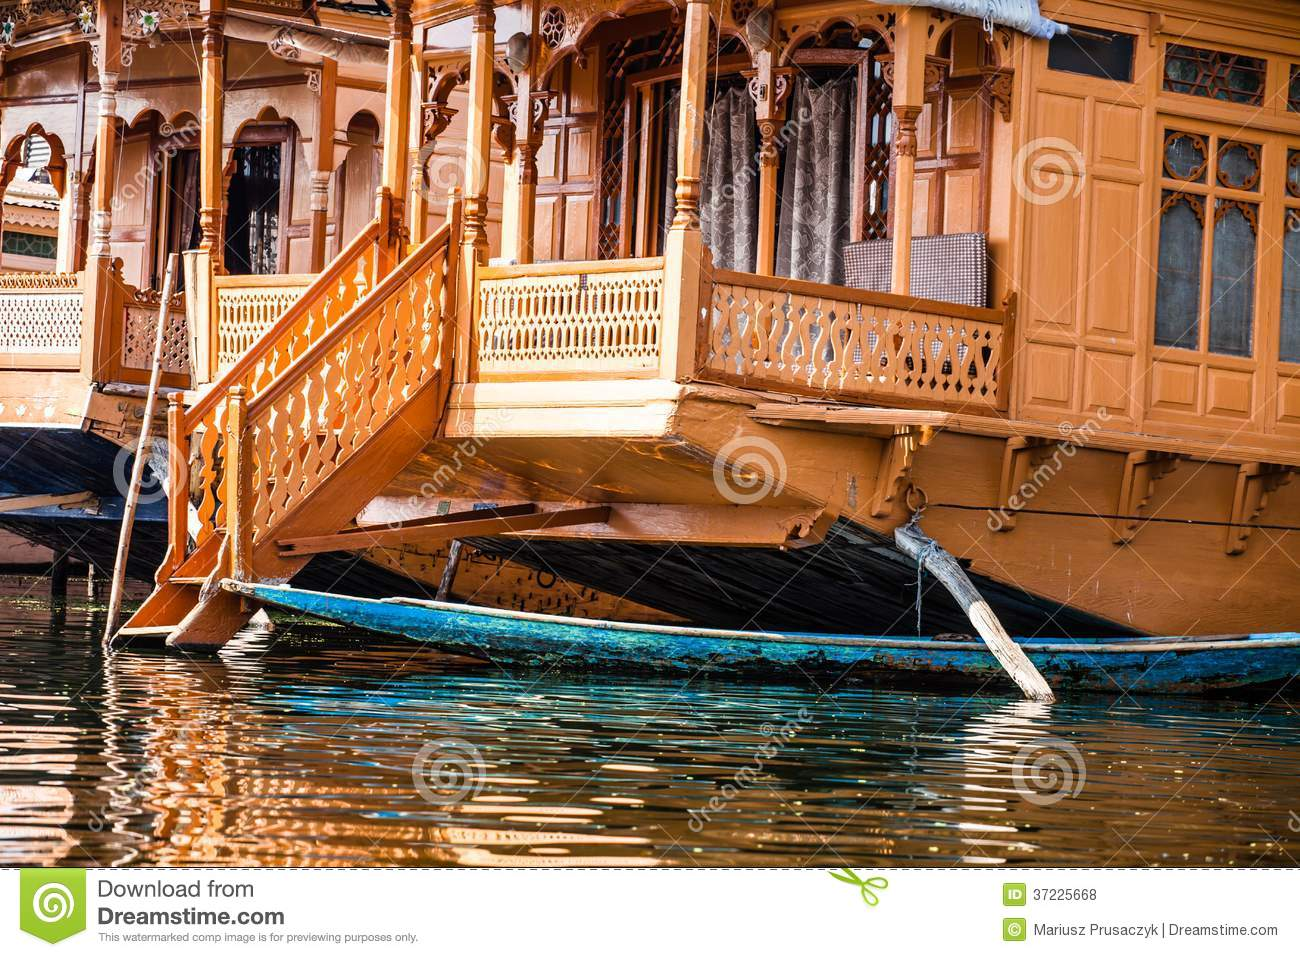 bateaux maison les h tels de luxe de flottement en dal lake srinagar india photo stock image. Black Bedroom Furniture Sets. Home Design Ideas